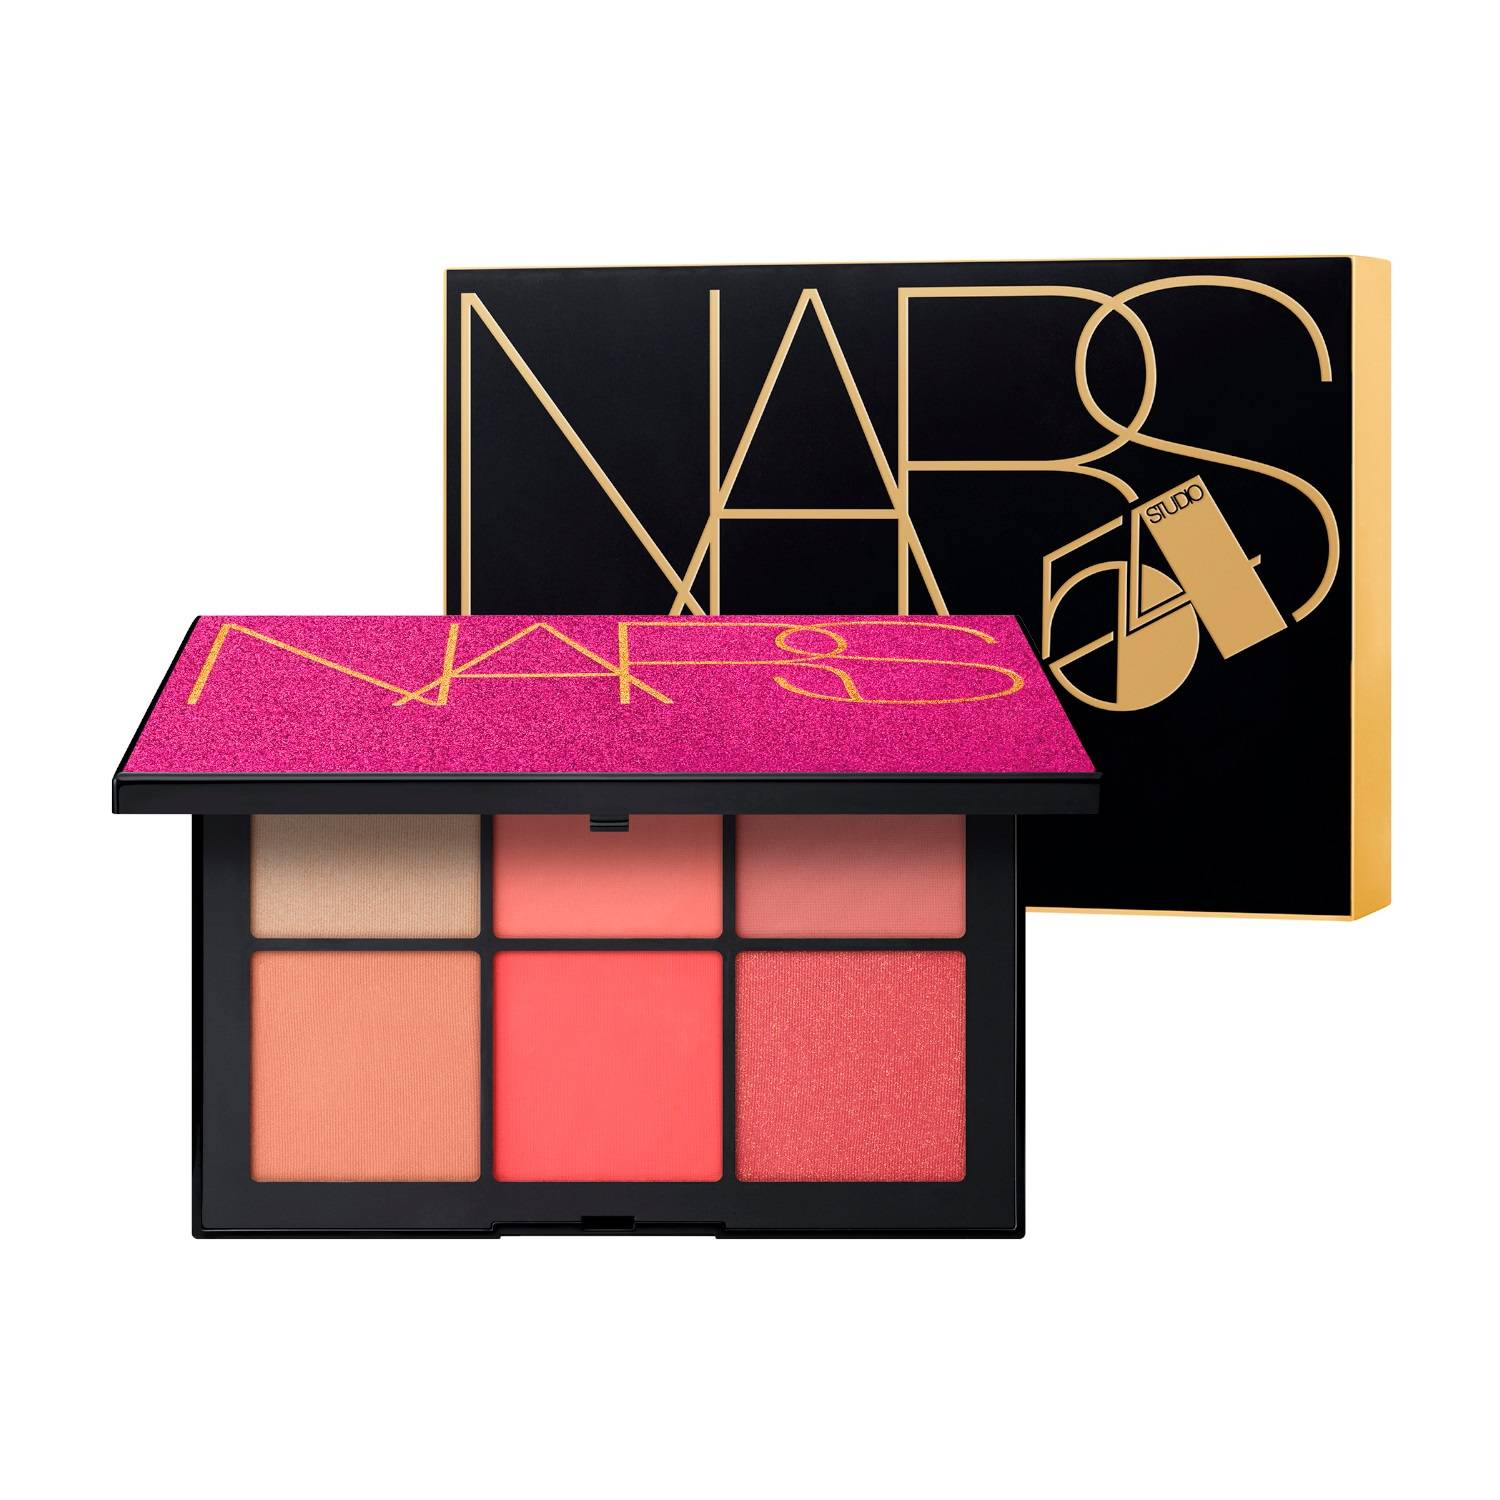 Paleta de mejillas Free Lover Cheek de NARS